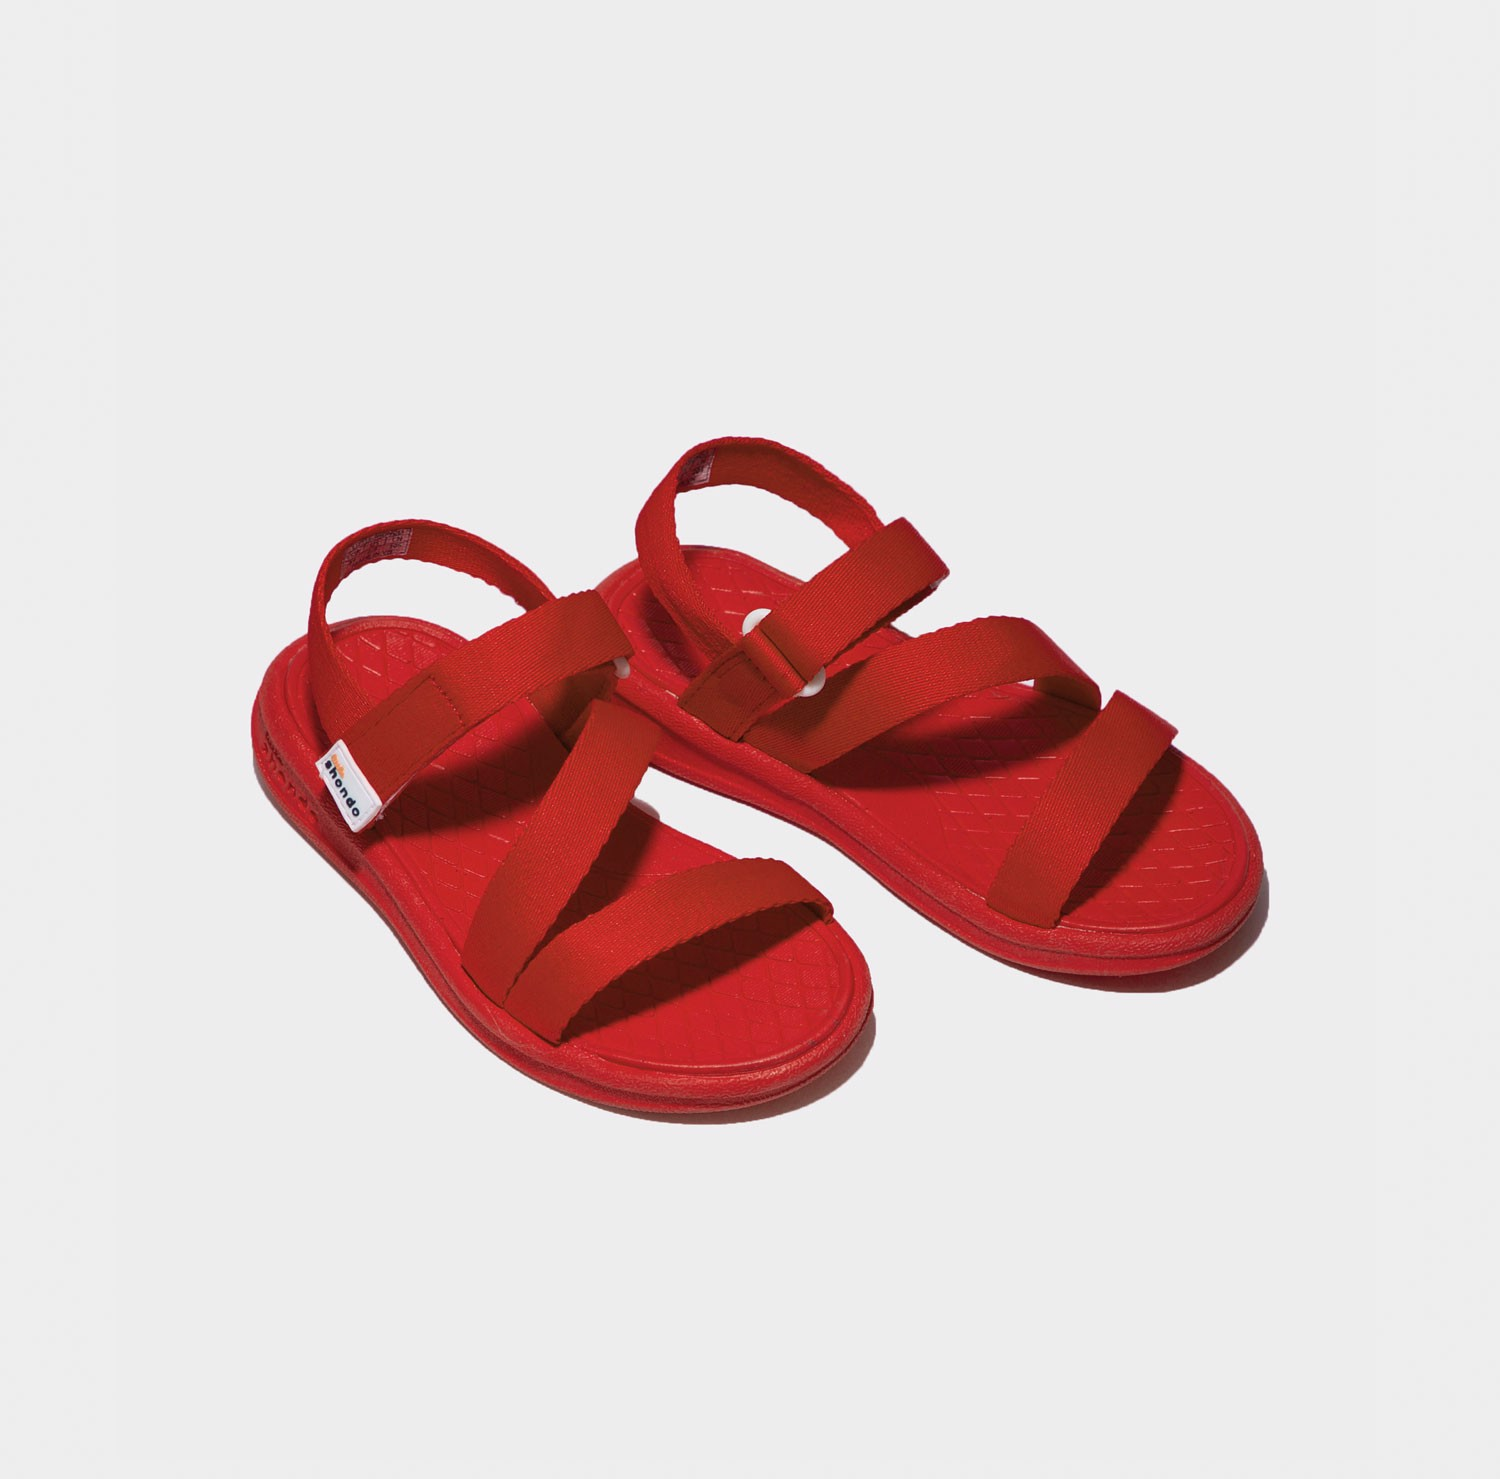 Sandals kids đỏ full LSM006